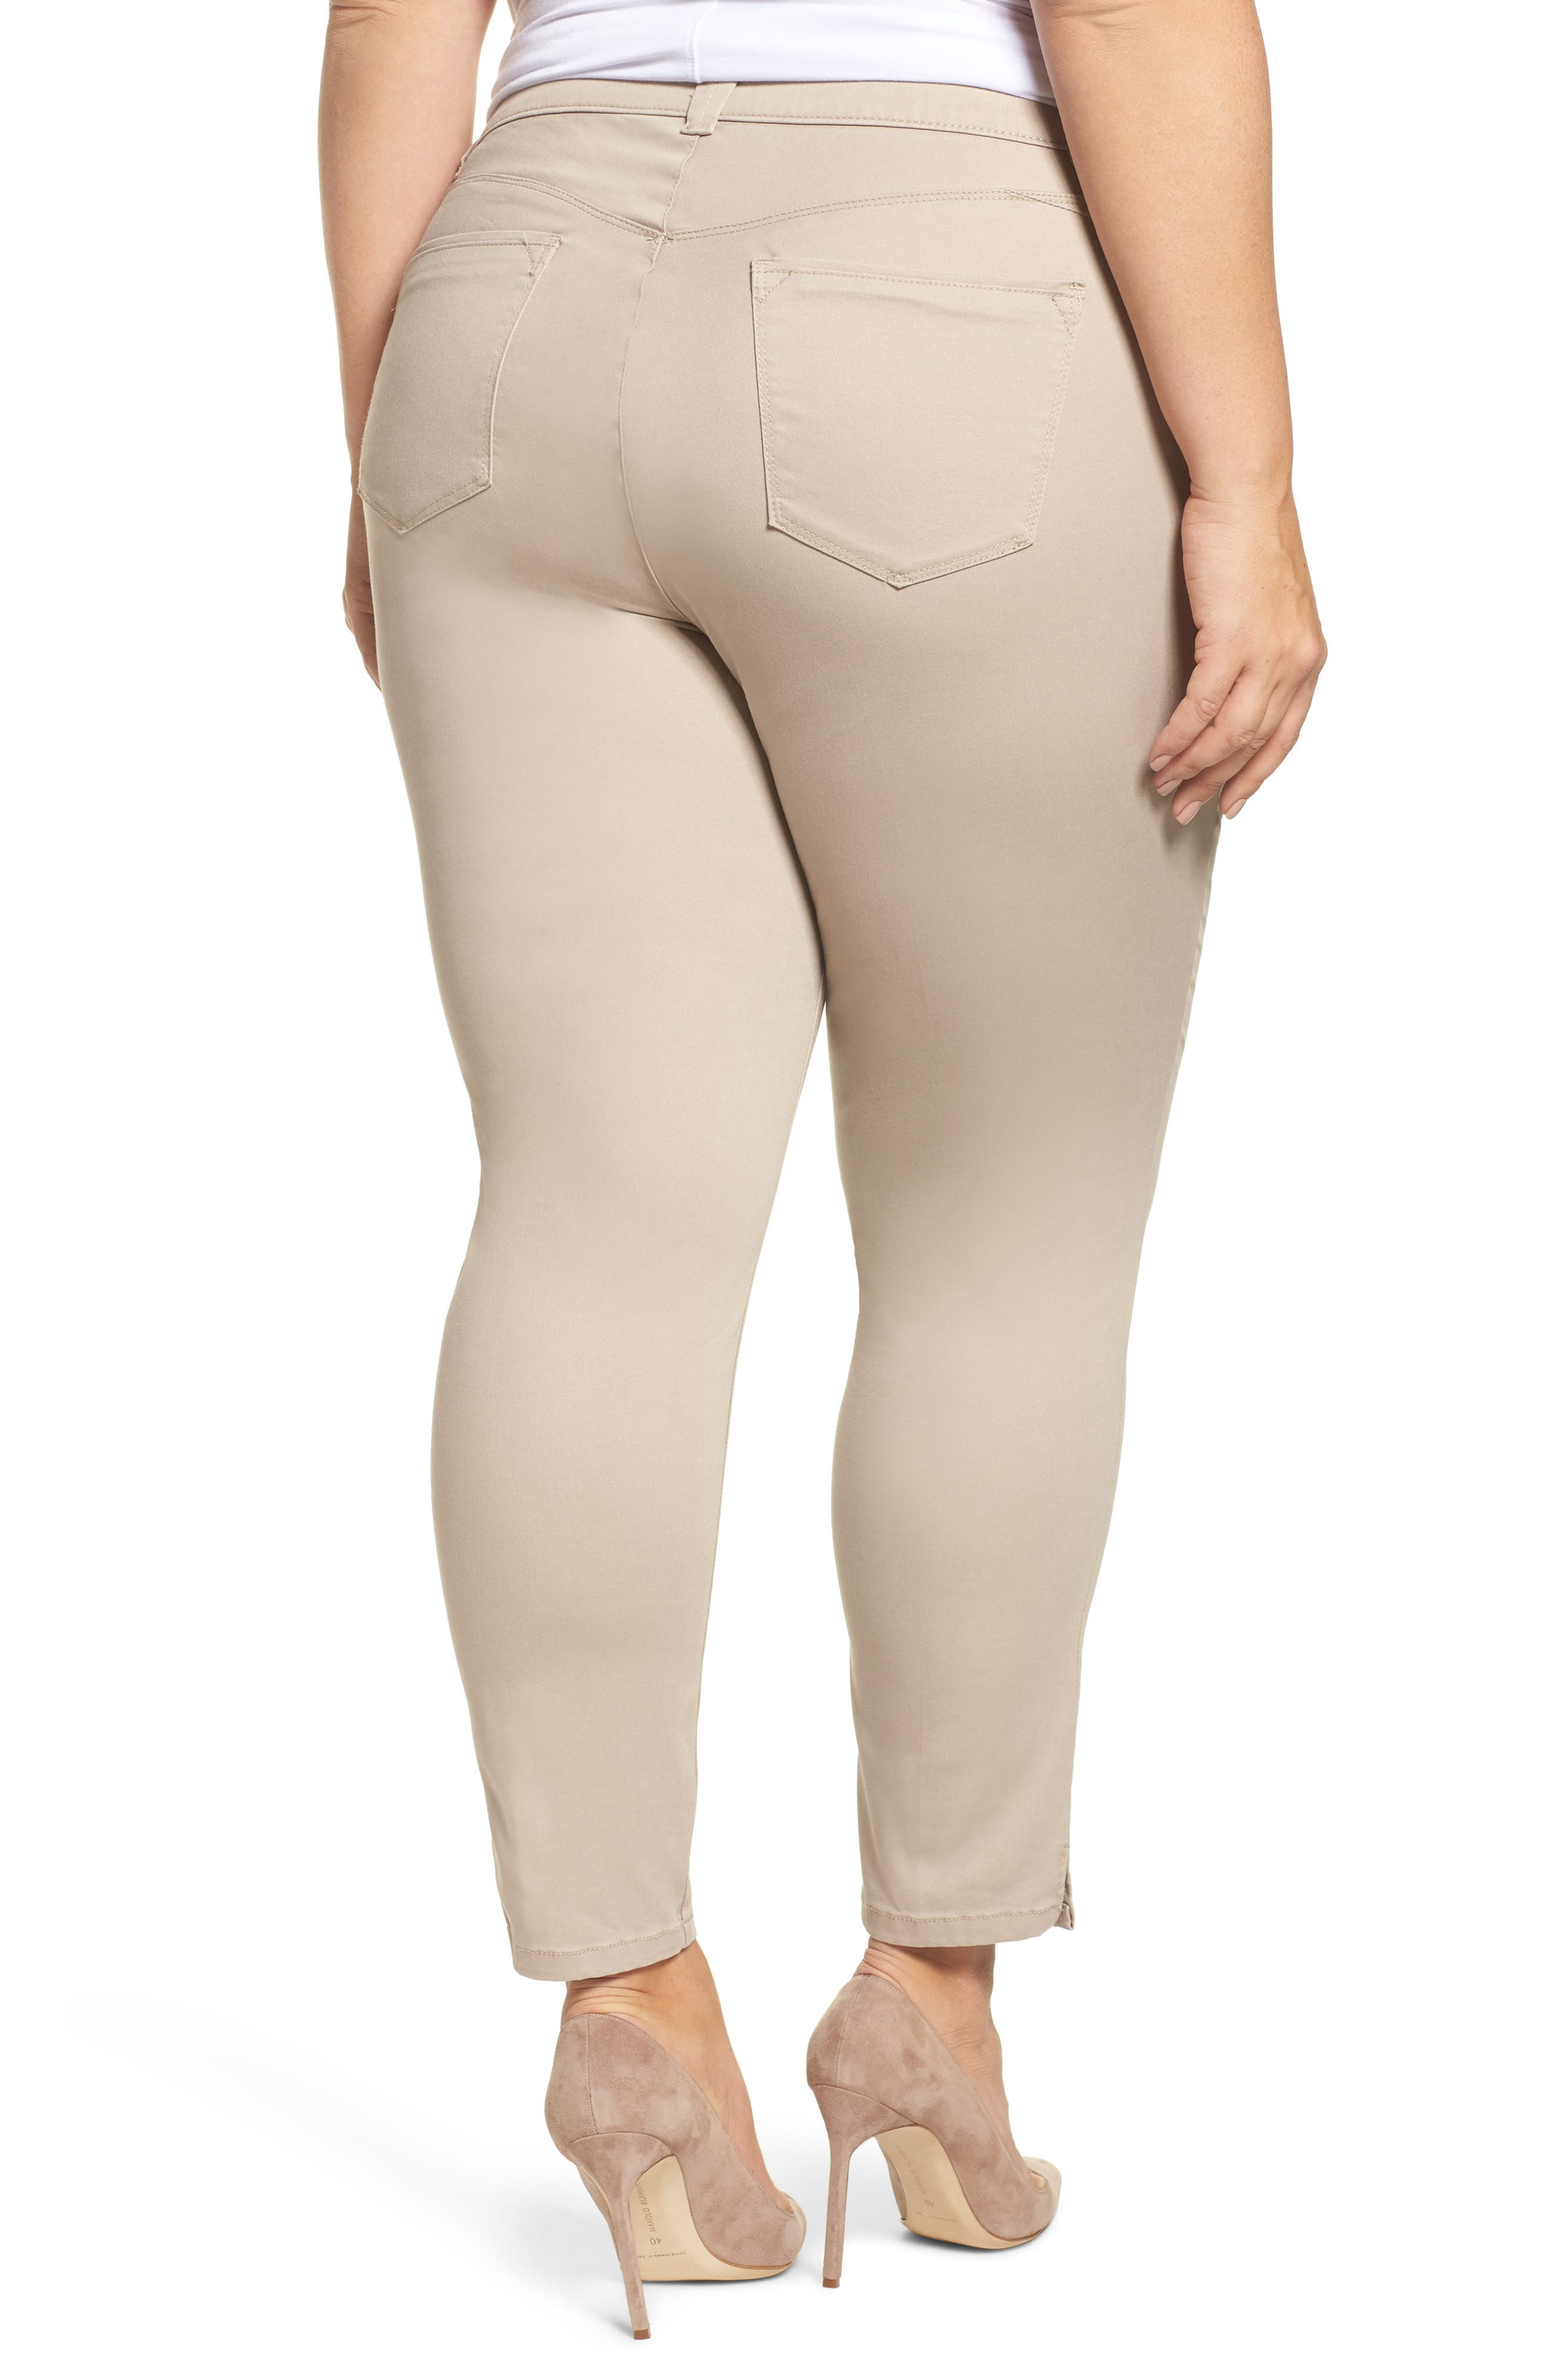 Ab-solution Ankle Pants,                             Alternate thumbnail 2, color,                             Flax